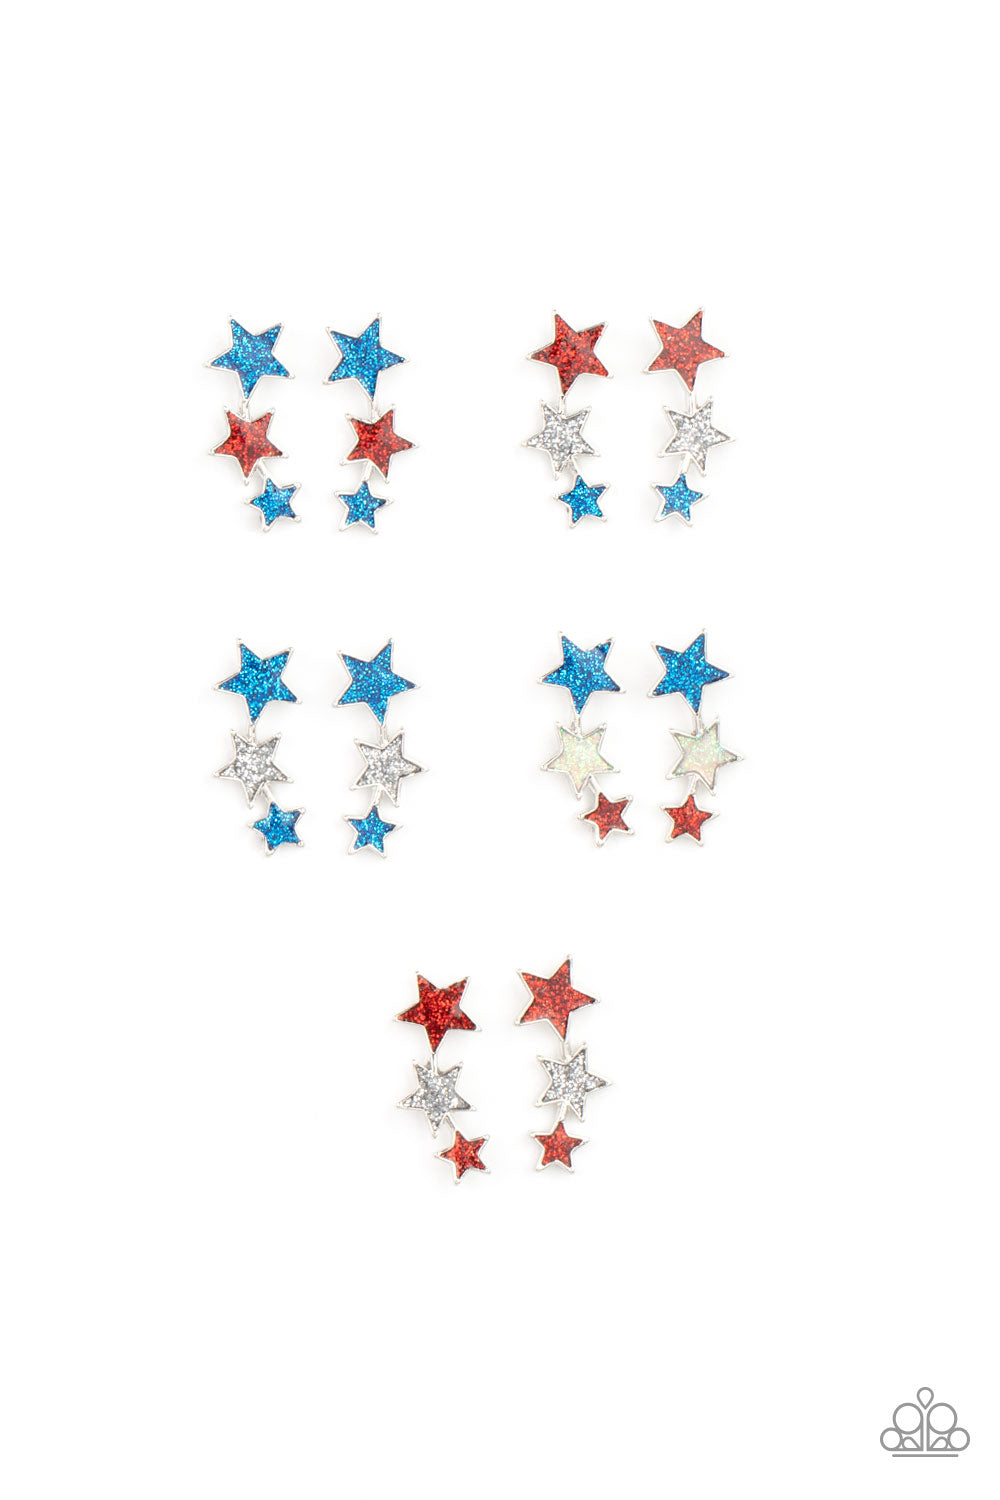 Paparazzi Let Freedom Ring Iridescent Stars Earrings (2298)